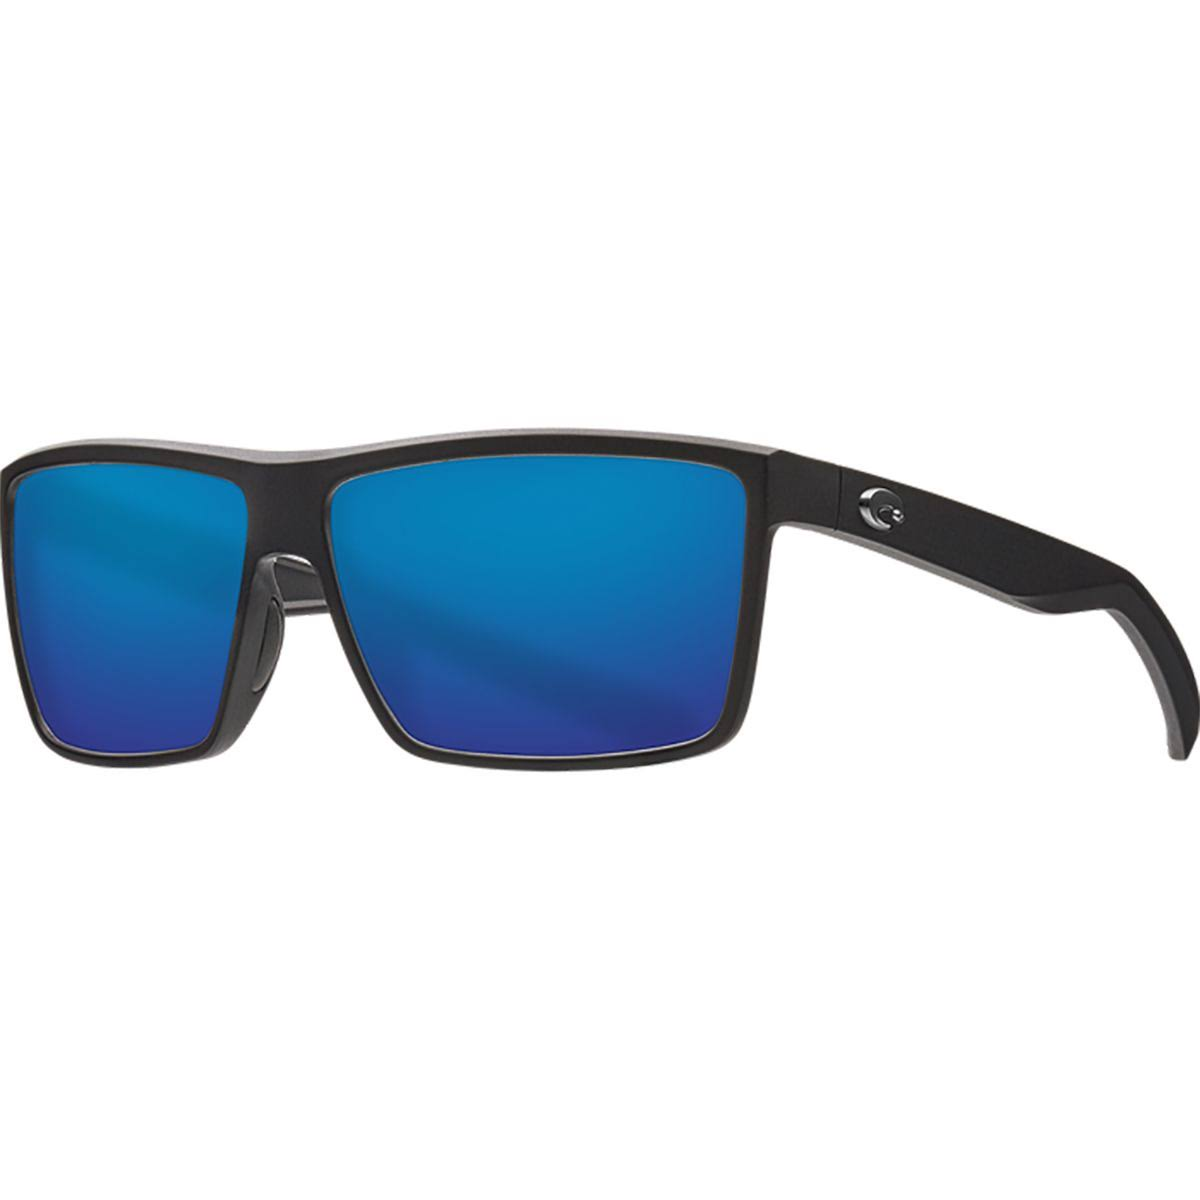 Costa Del Mar Rinconcito - Matte Black/Blue Mirror 580G